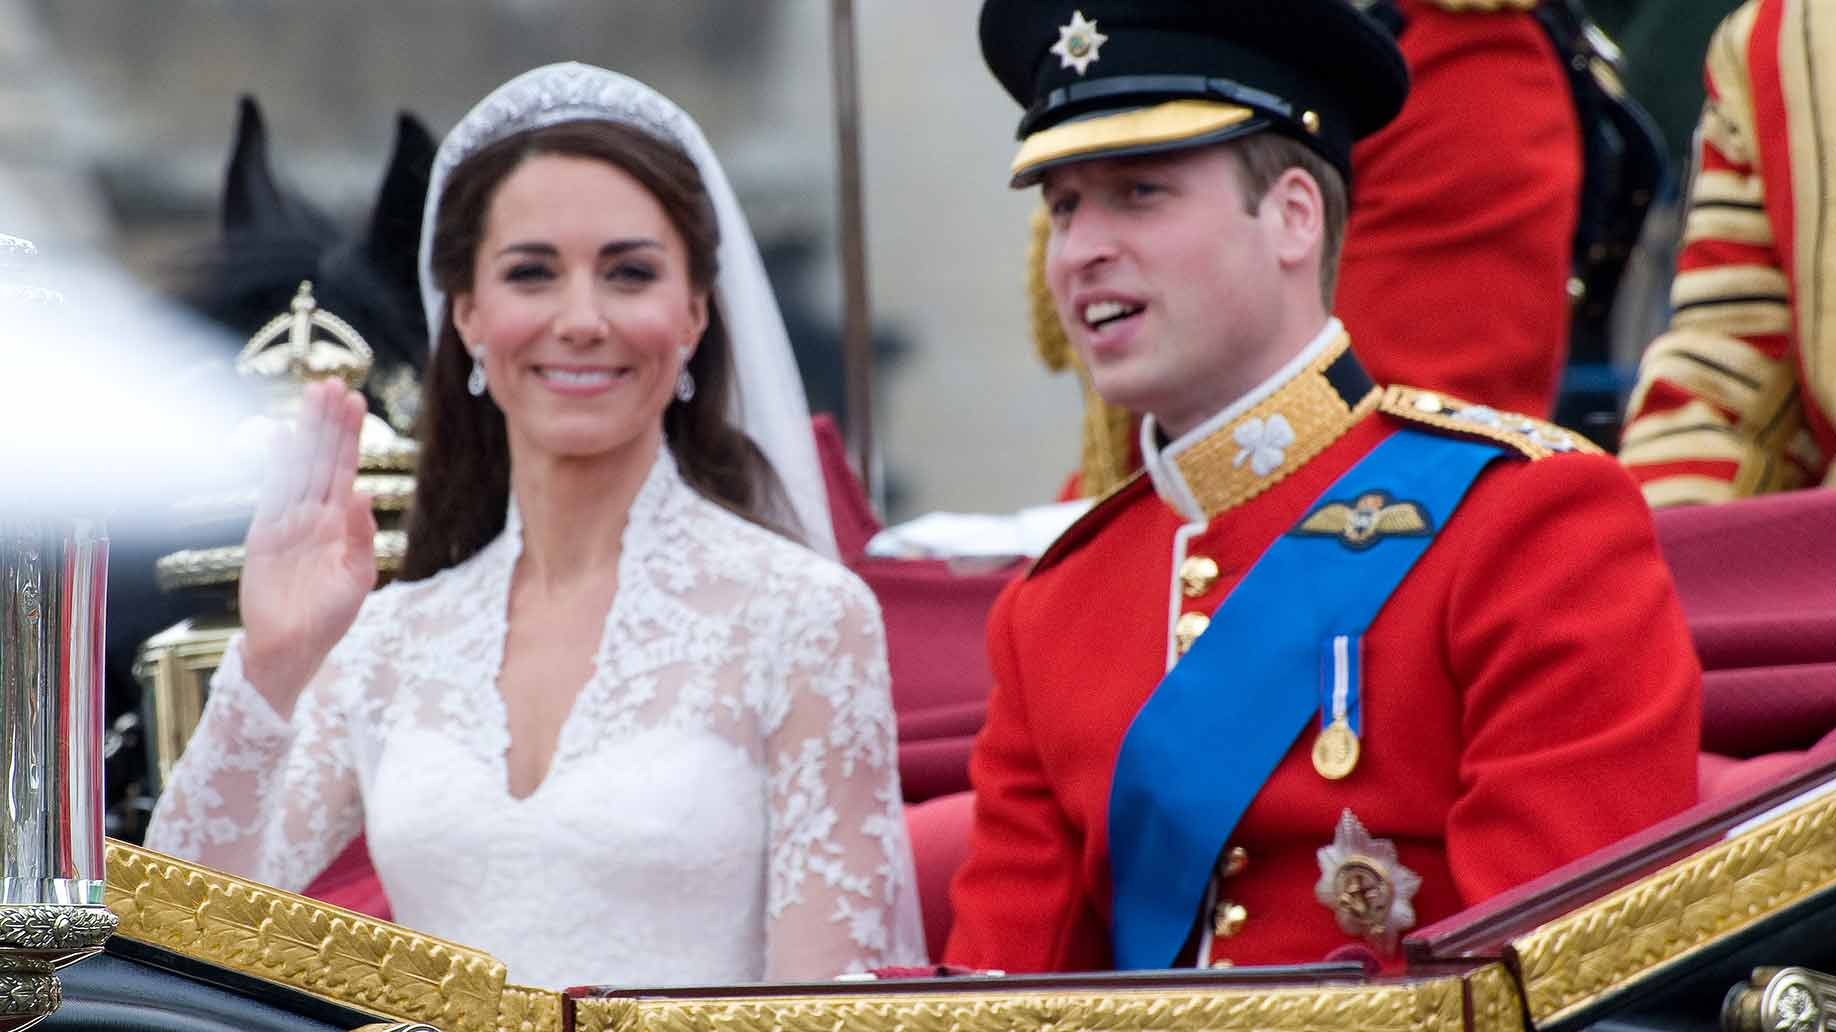 Kate Middleton Royal Wedding Dress - How Much It Cost